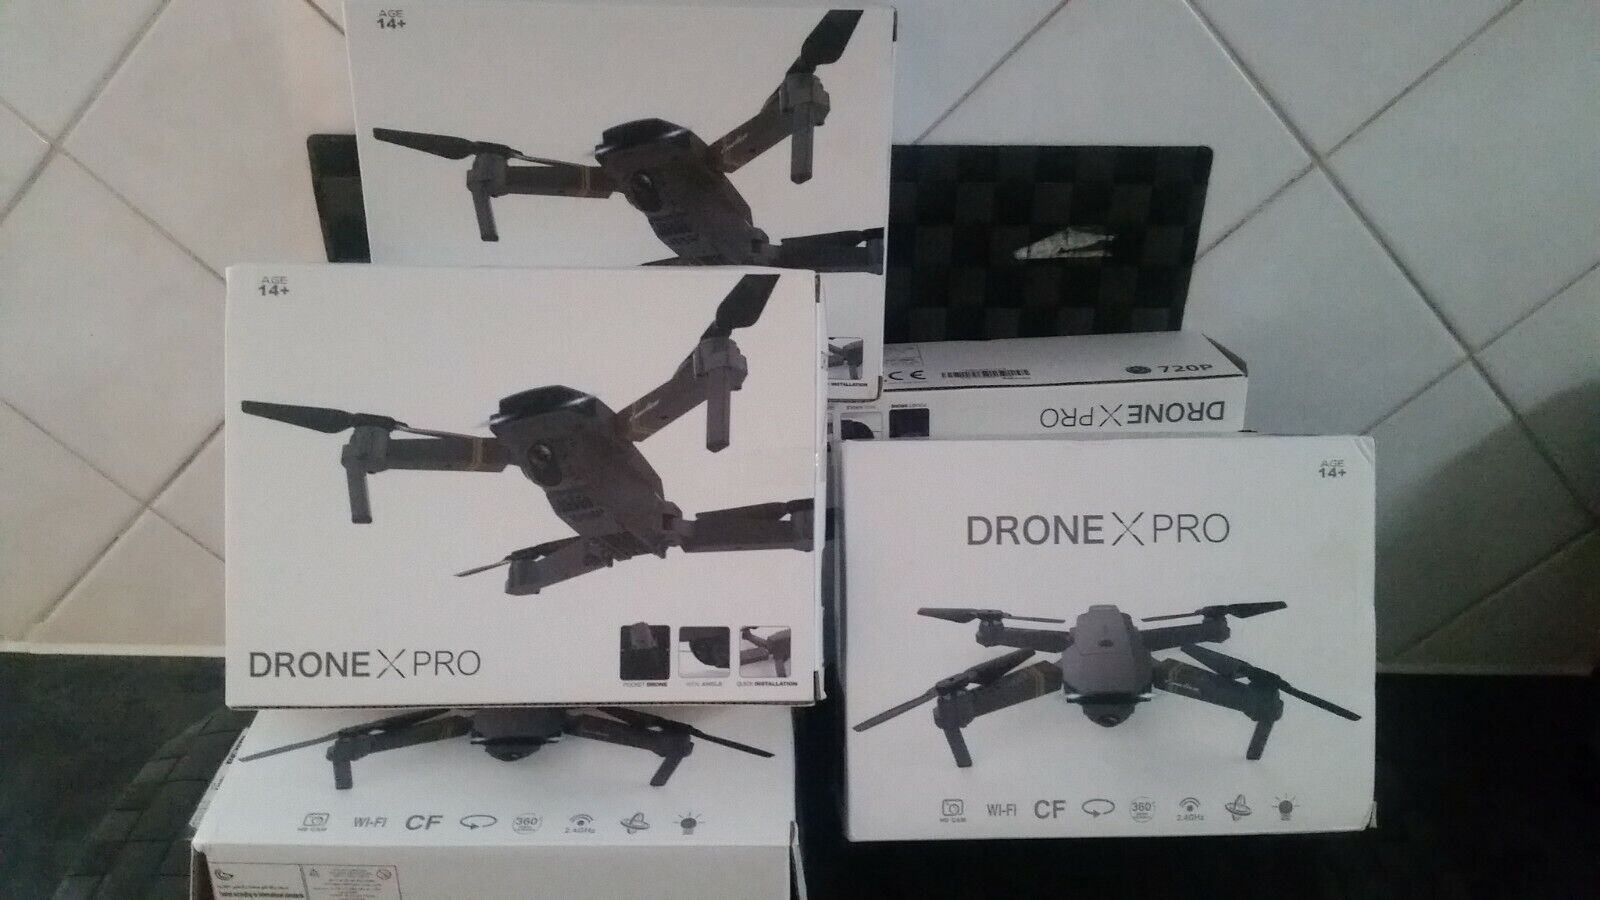 Drone X Pro Foldable Quadcopter +720P HD Camera|WiFi FPV GPS BatteriesRC \ New